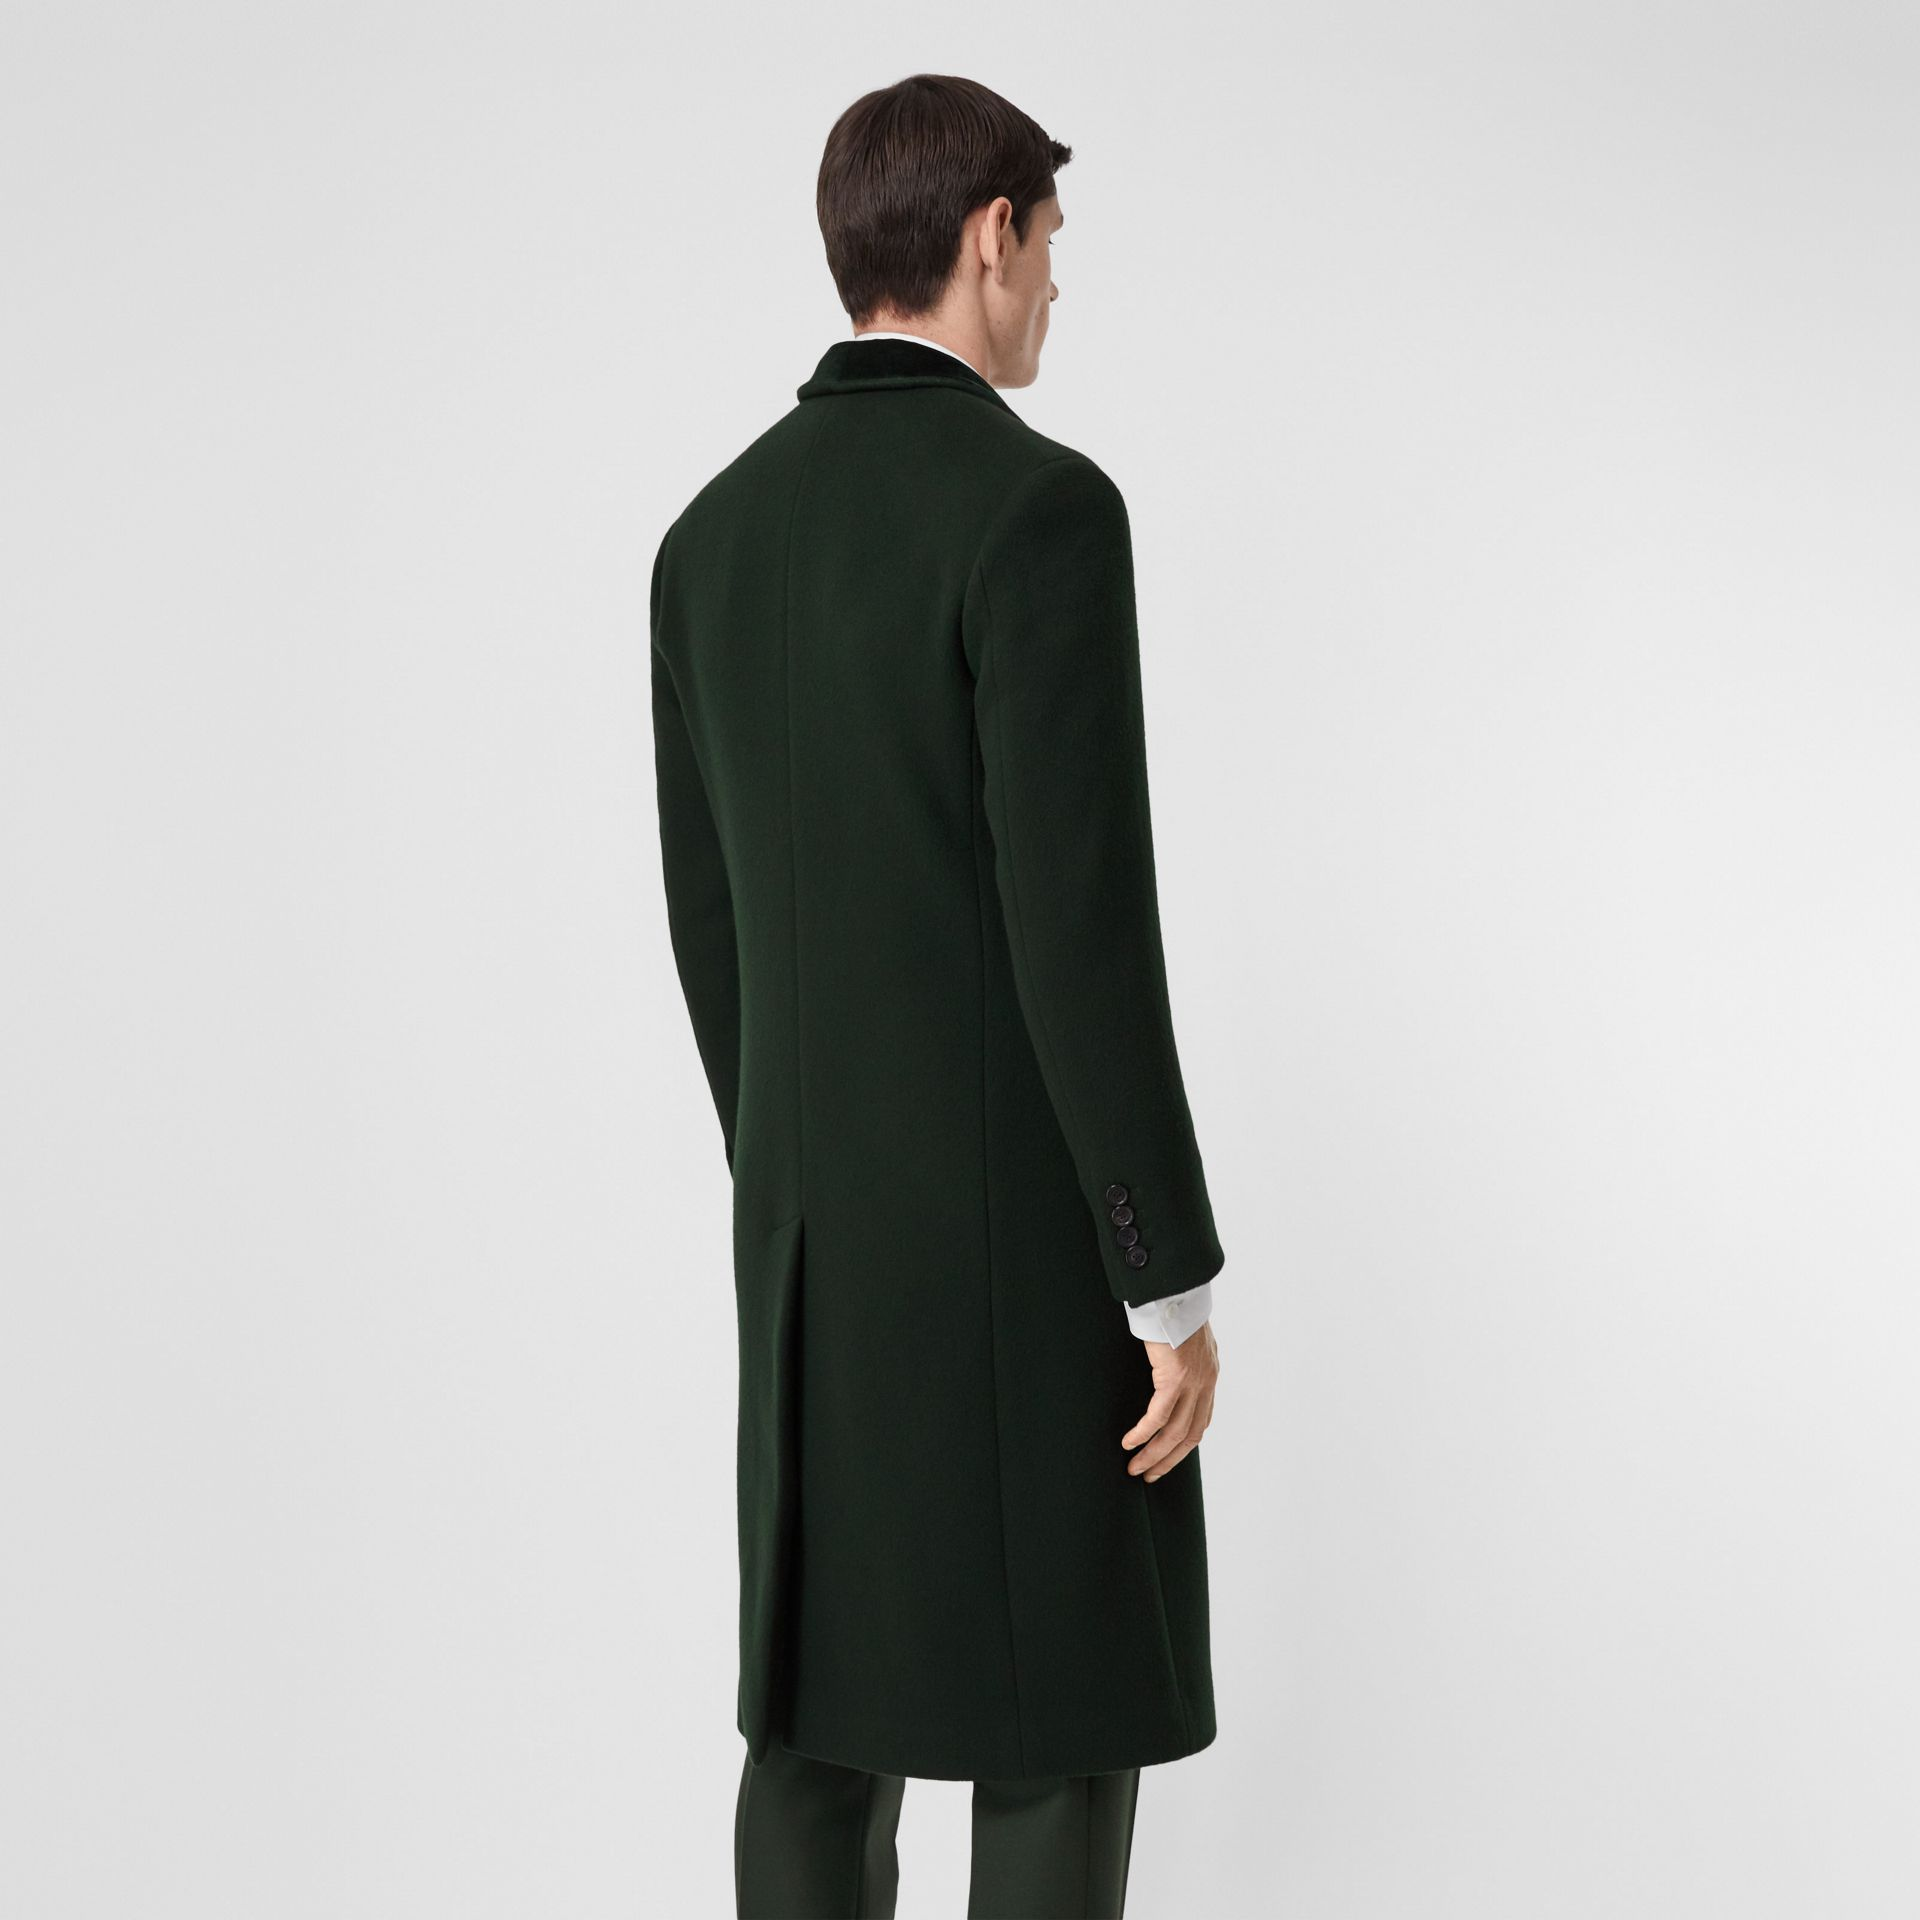 Velvet Trim Wool Cashmere Tailored Coat in Dark Pine Green - Men | Burberry - gallery image 2